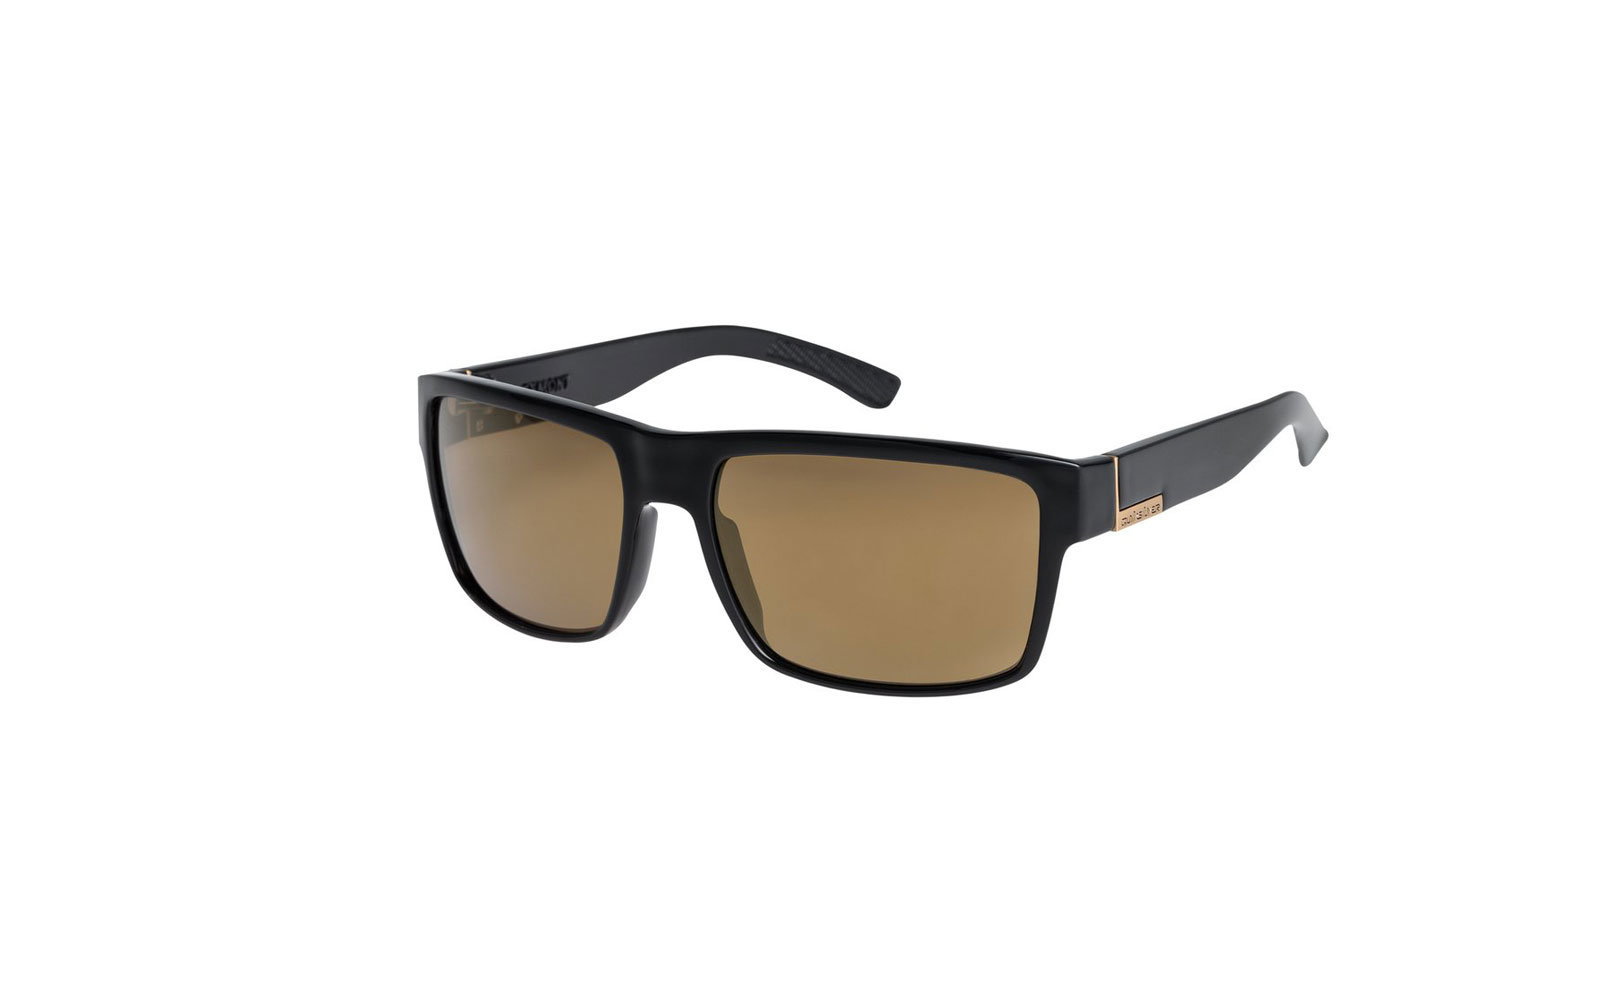 9f94f7a935 The Best Sunglasses to Travel With